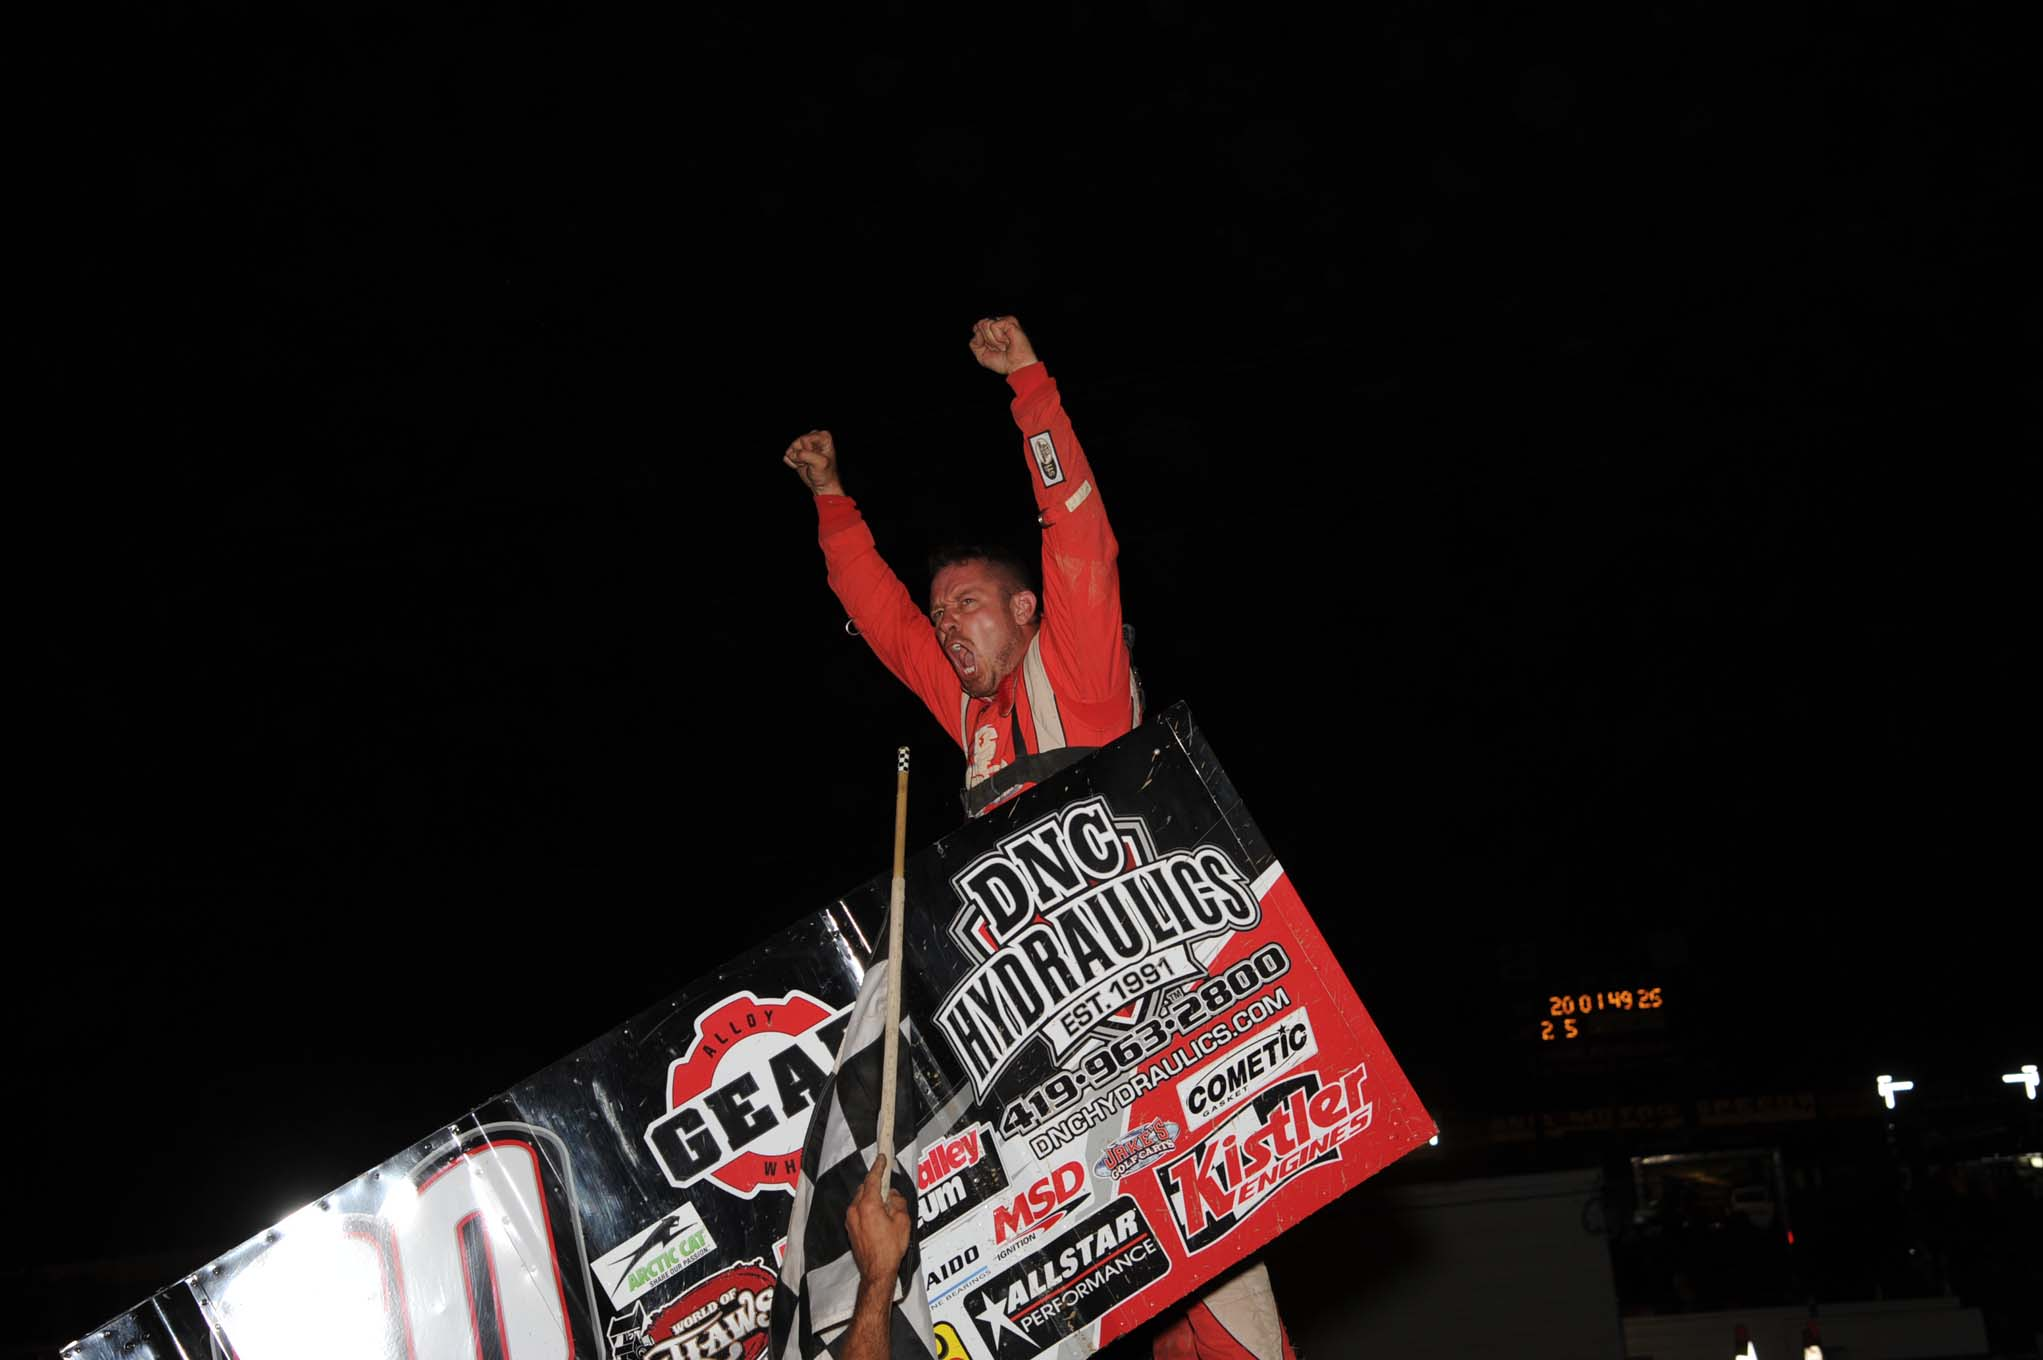 Greg Wilson (Benton Ridge, Ohio) celebrates a win at Pennsylvania Motor Speedway in June. It was his first All Star win in seven years.